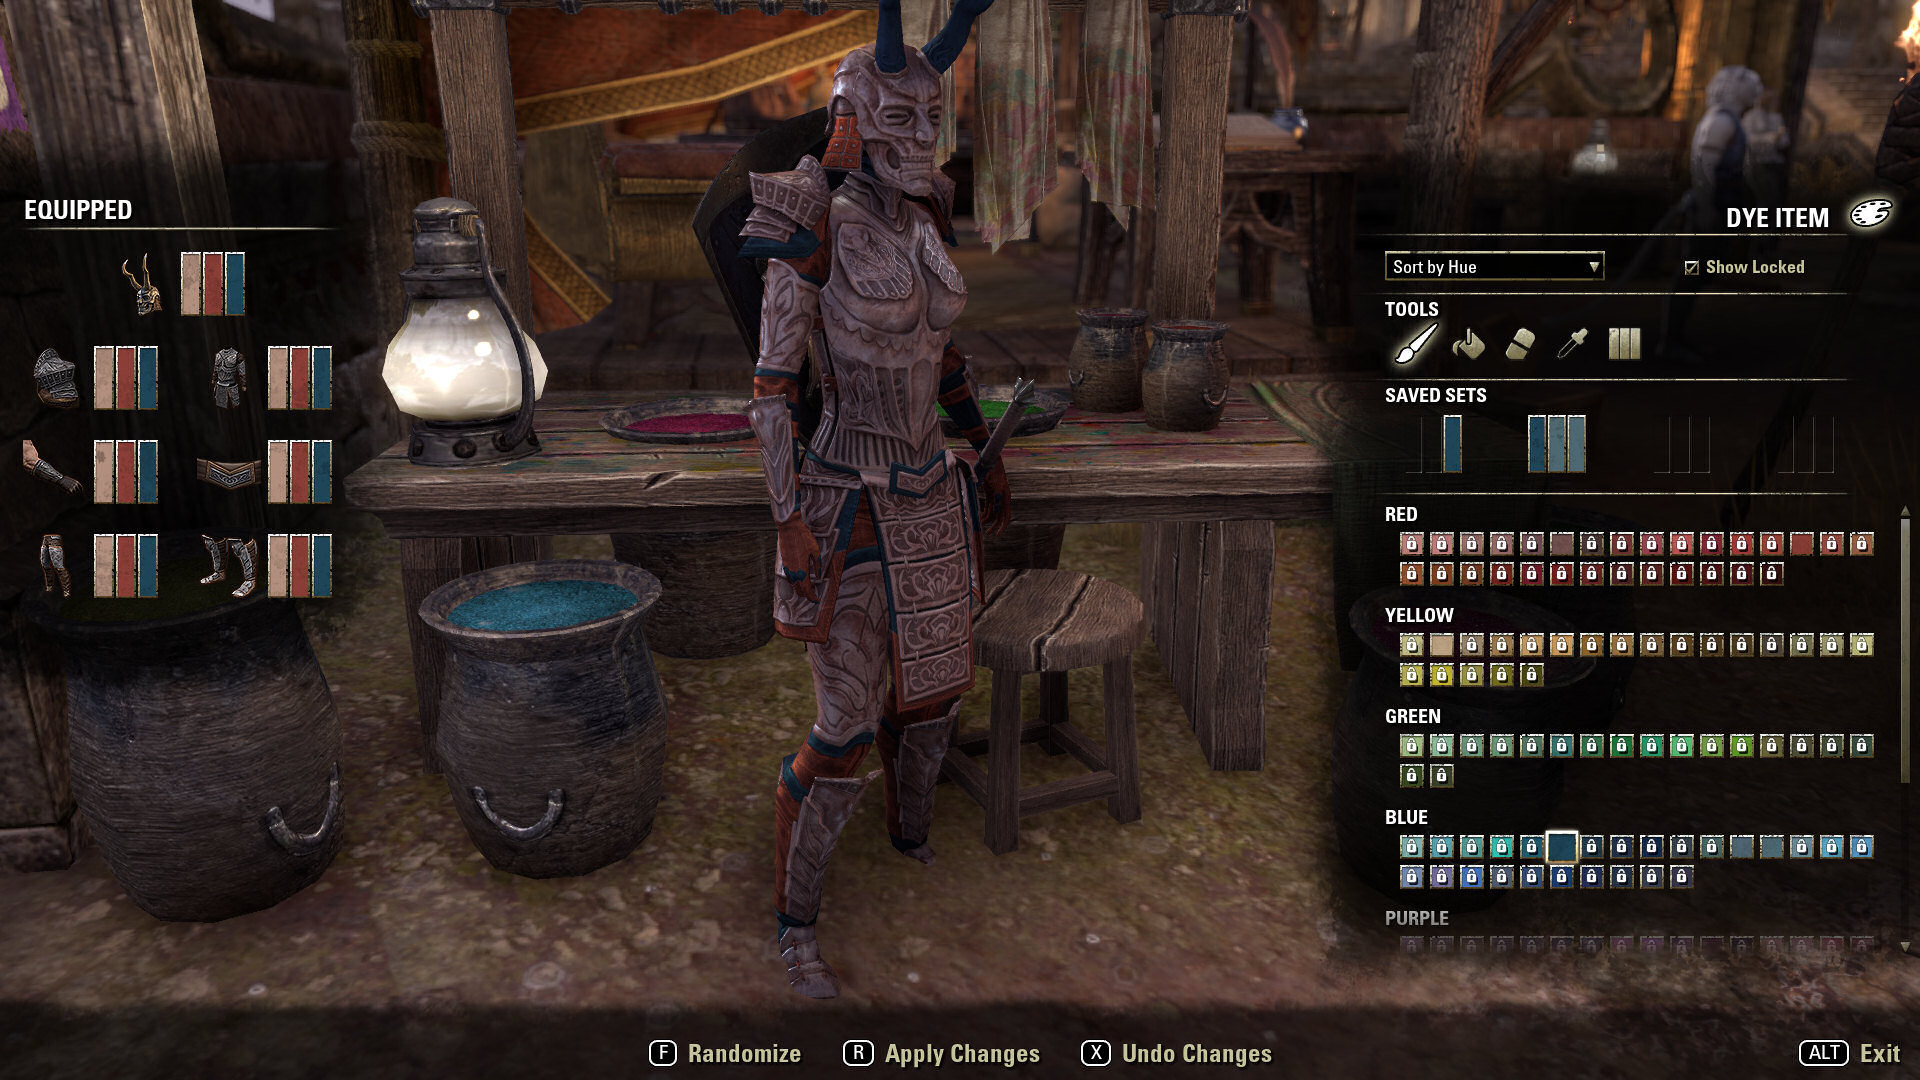 ESO Dye Guide - Complete List of Dyes - Tamriel Journal